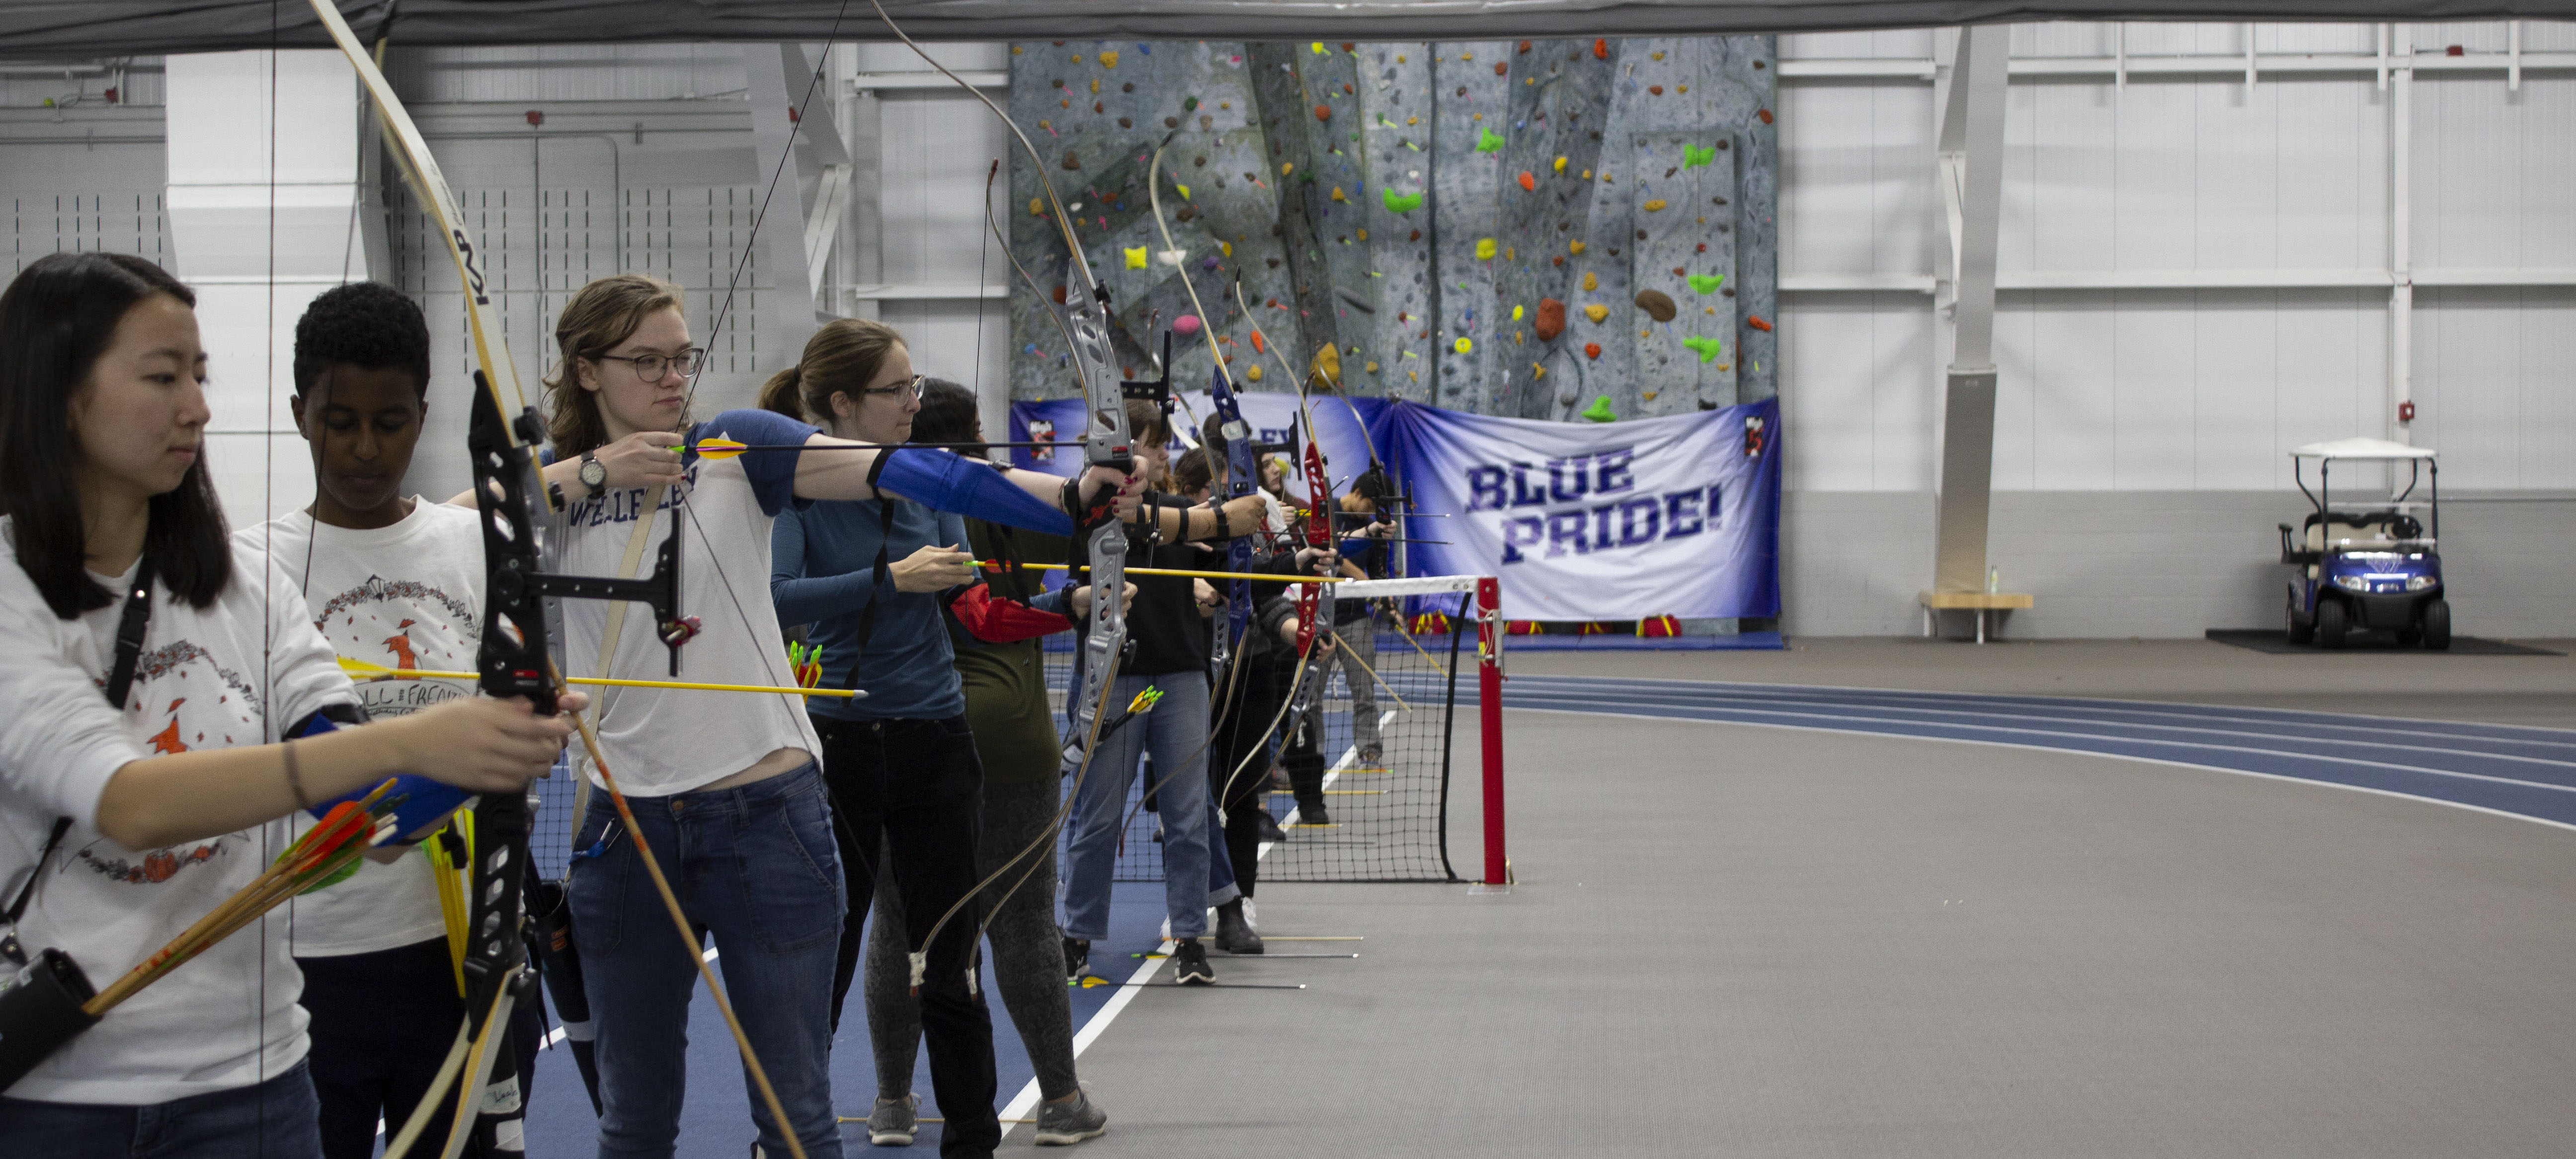 Students are lined up with bow and arrows inside the KSC. Some have their bows drawn.